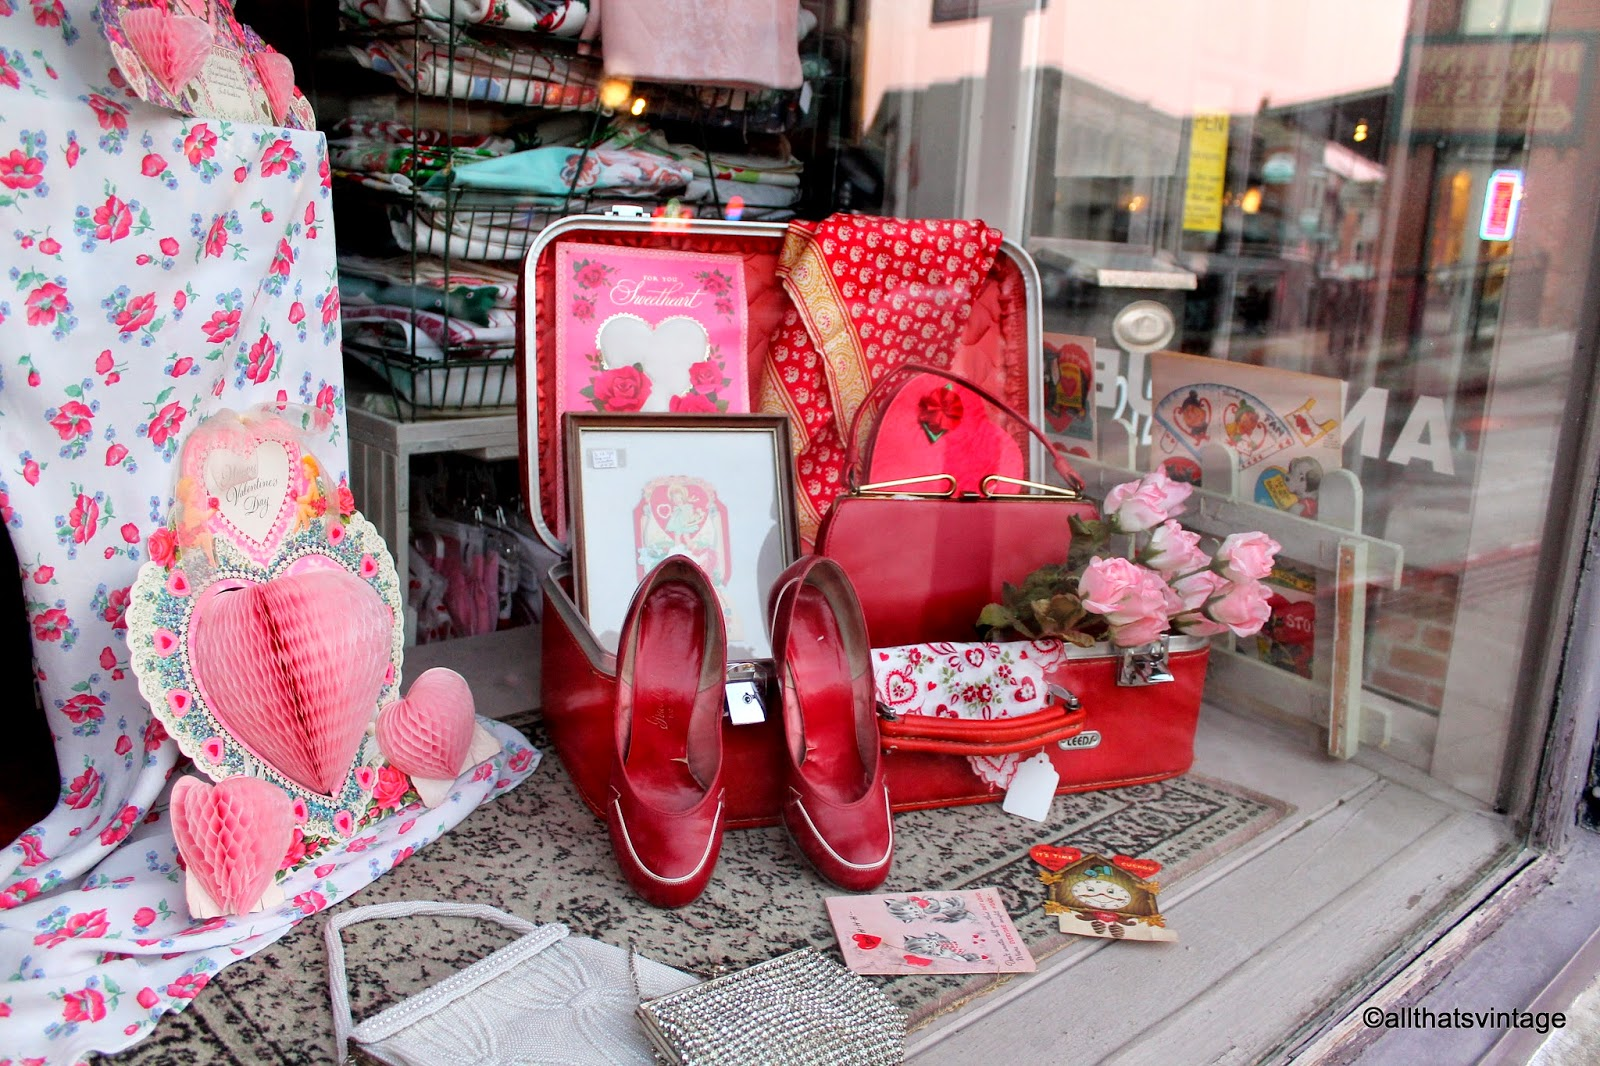 Celebrating Valentine's day through this vintage decoration for the window display, with a red luggage with roses and other stuff, a red pair of shoes, a cute patterned fabric and other little details.